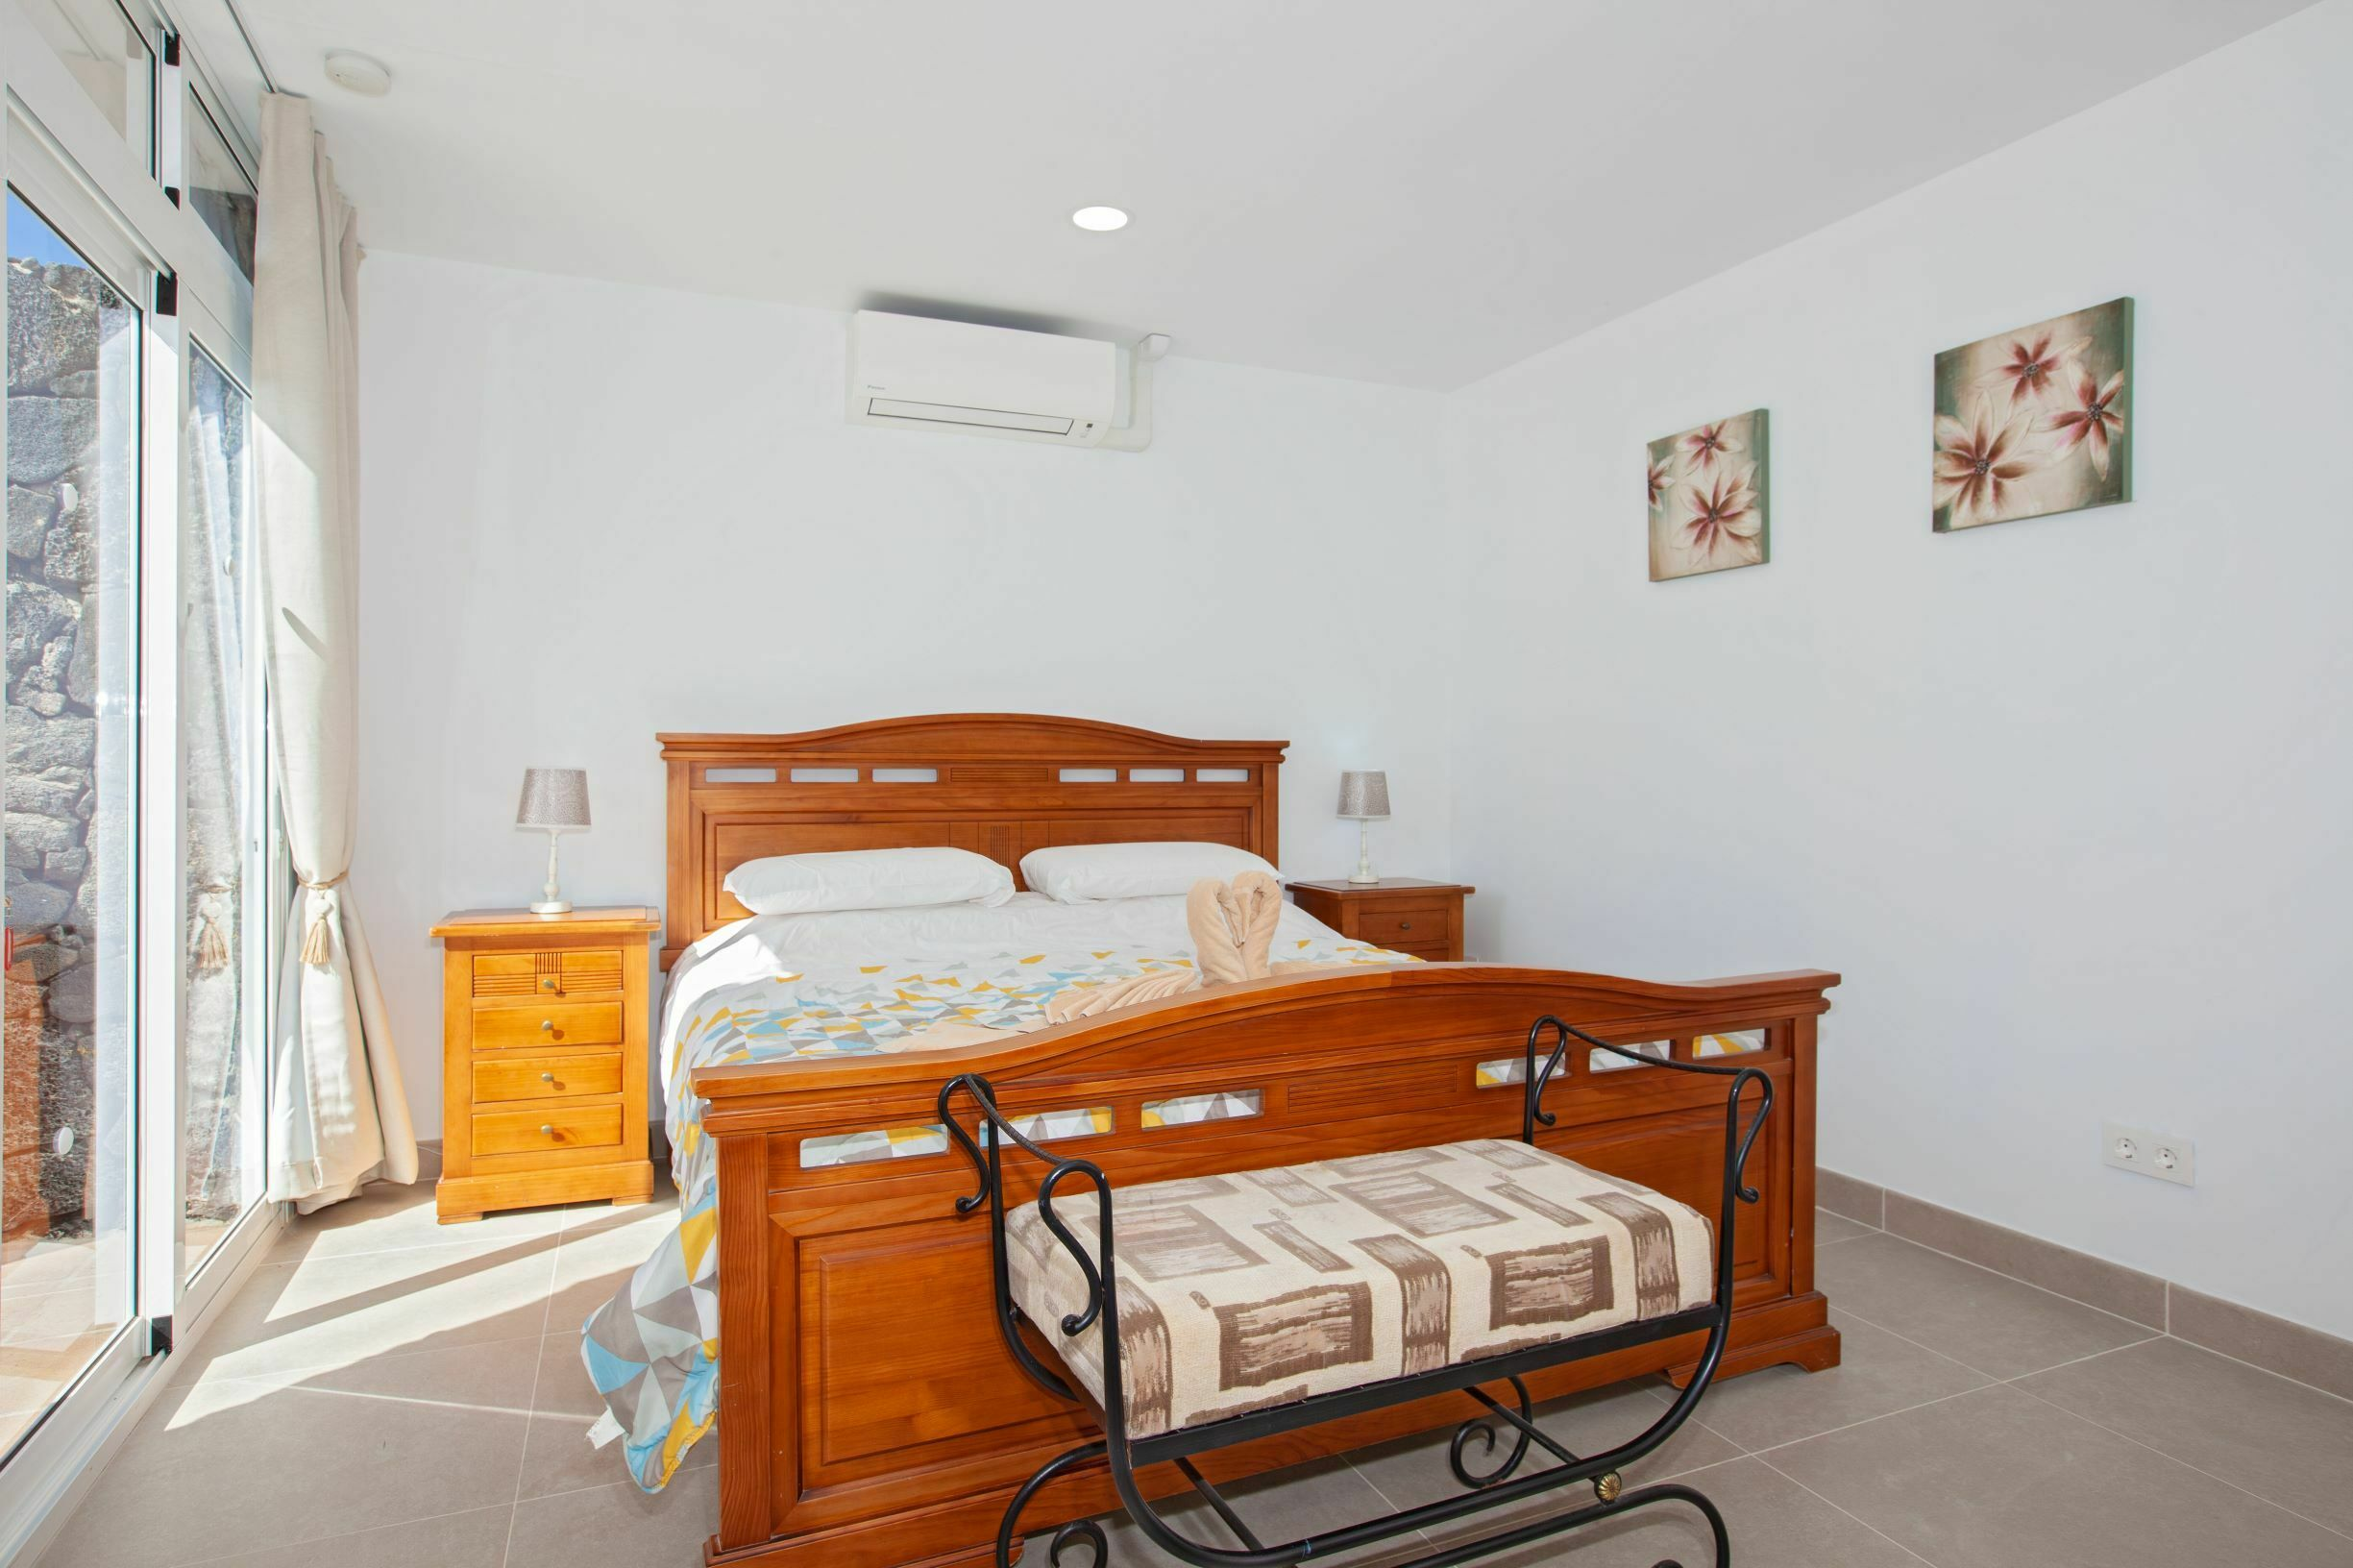 Casa Cristal - Double Bedroom - Super King Sized Bed